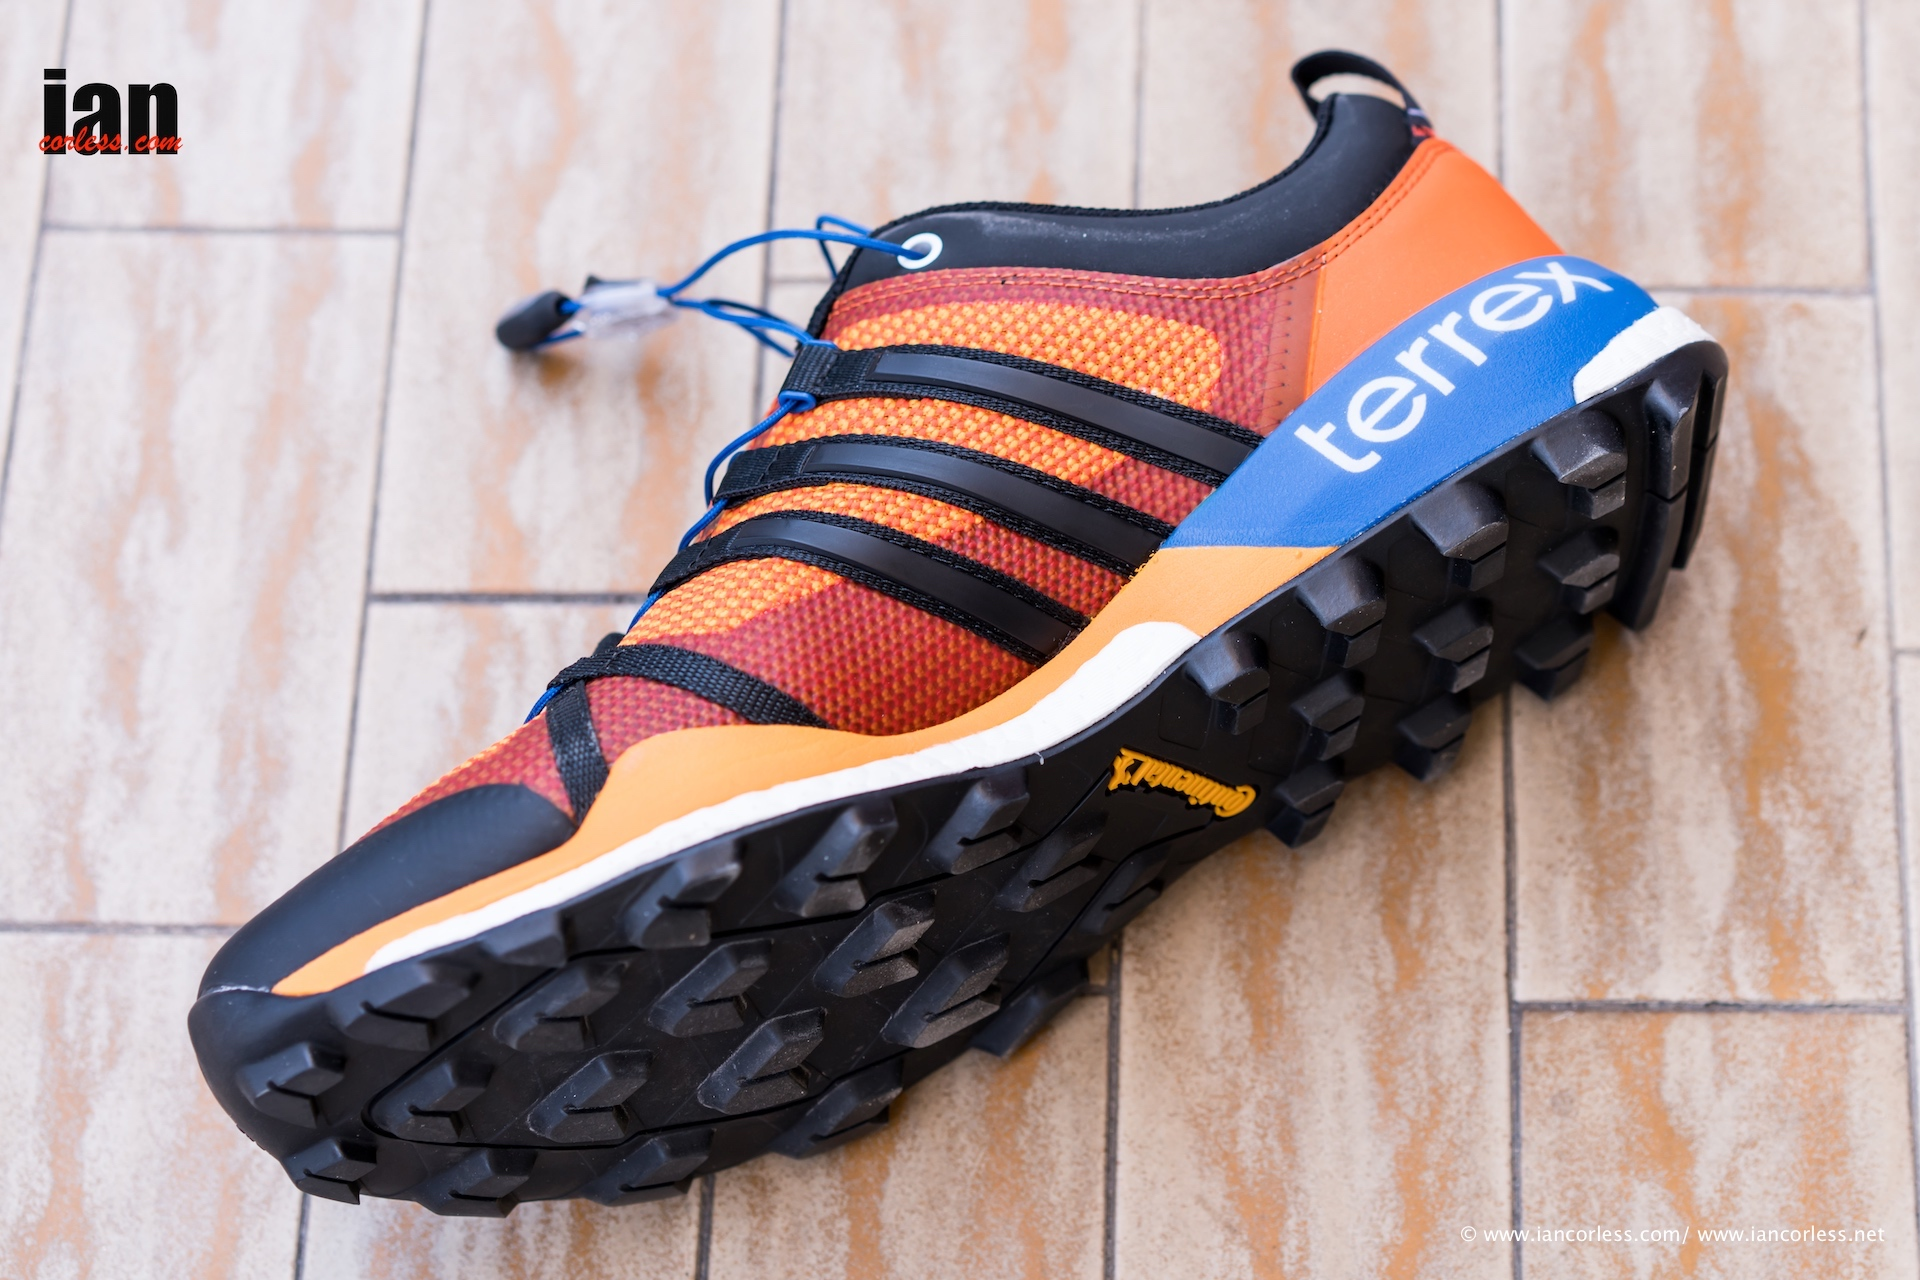 Adidas Terrex Skychaser Shoe Review |